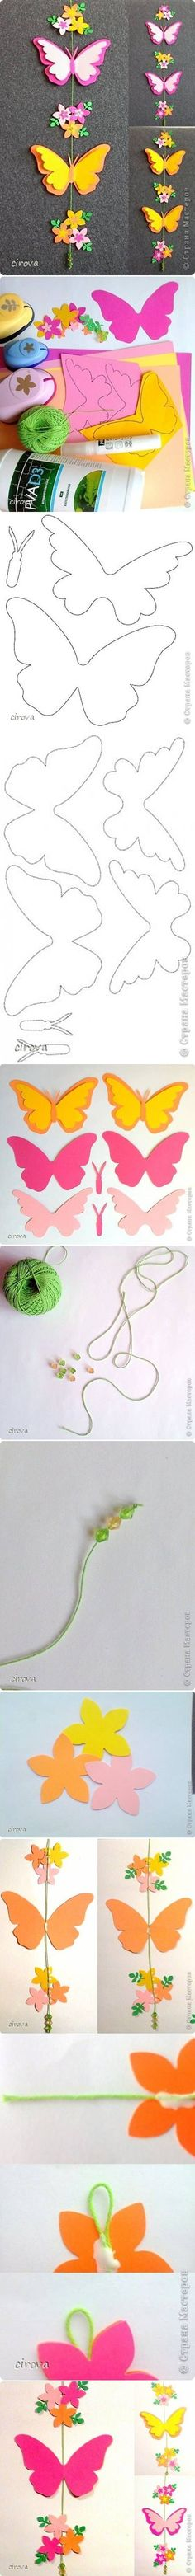 DIY Papier-Schmetterlings-Handy DIY Projekte | UsefulDIY.com